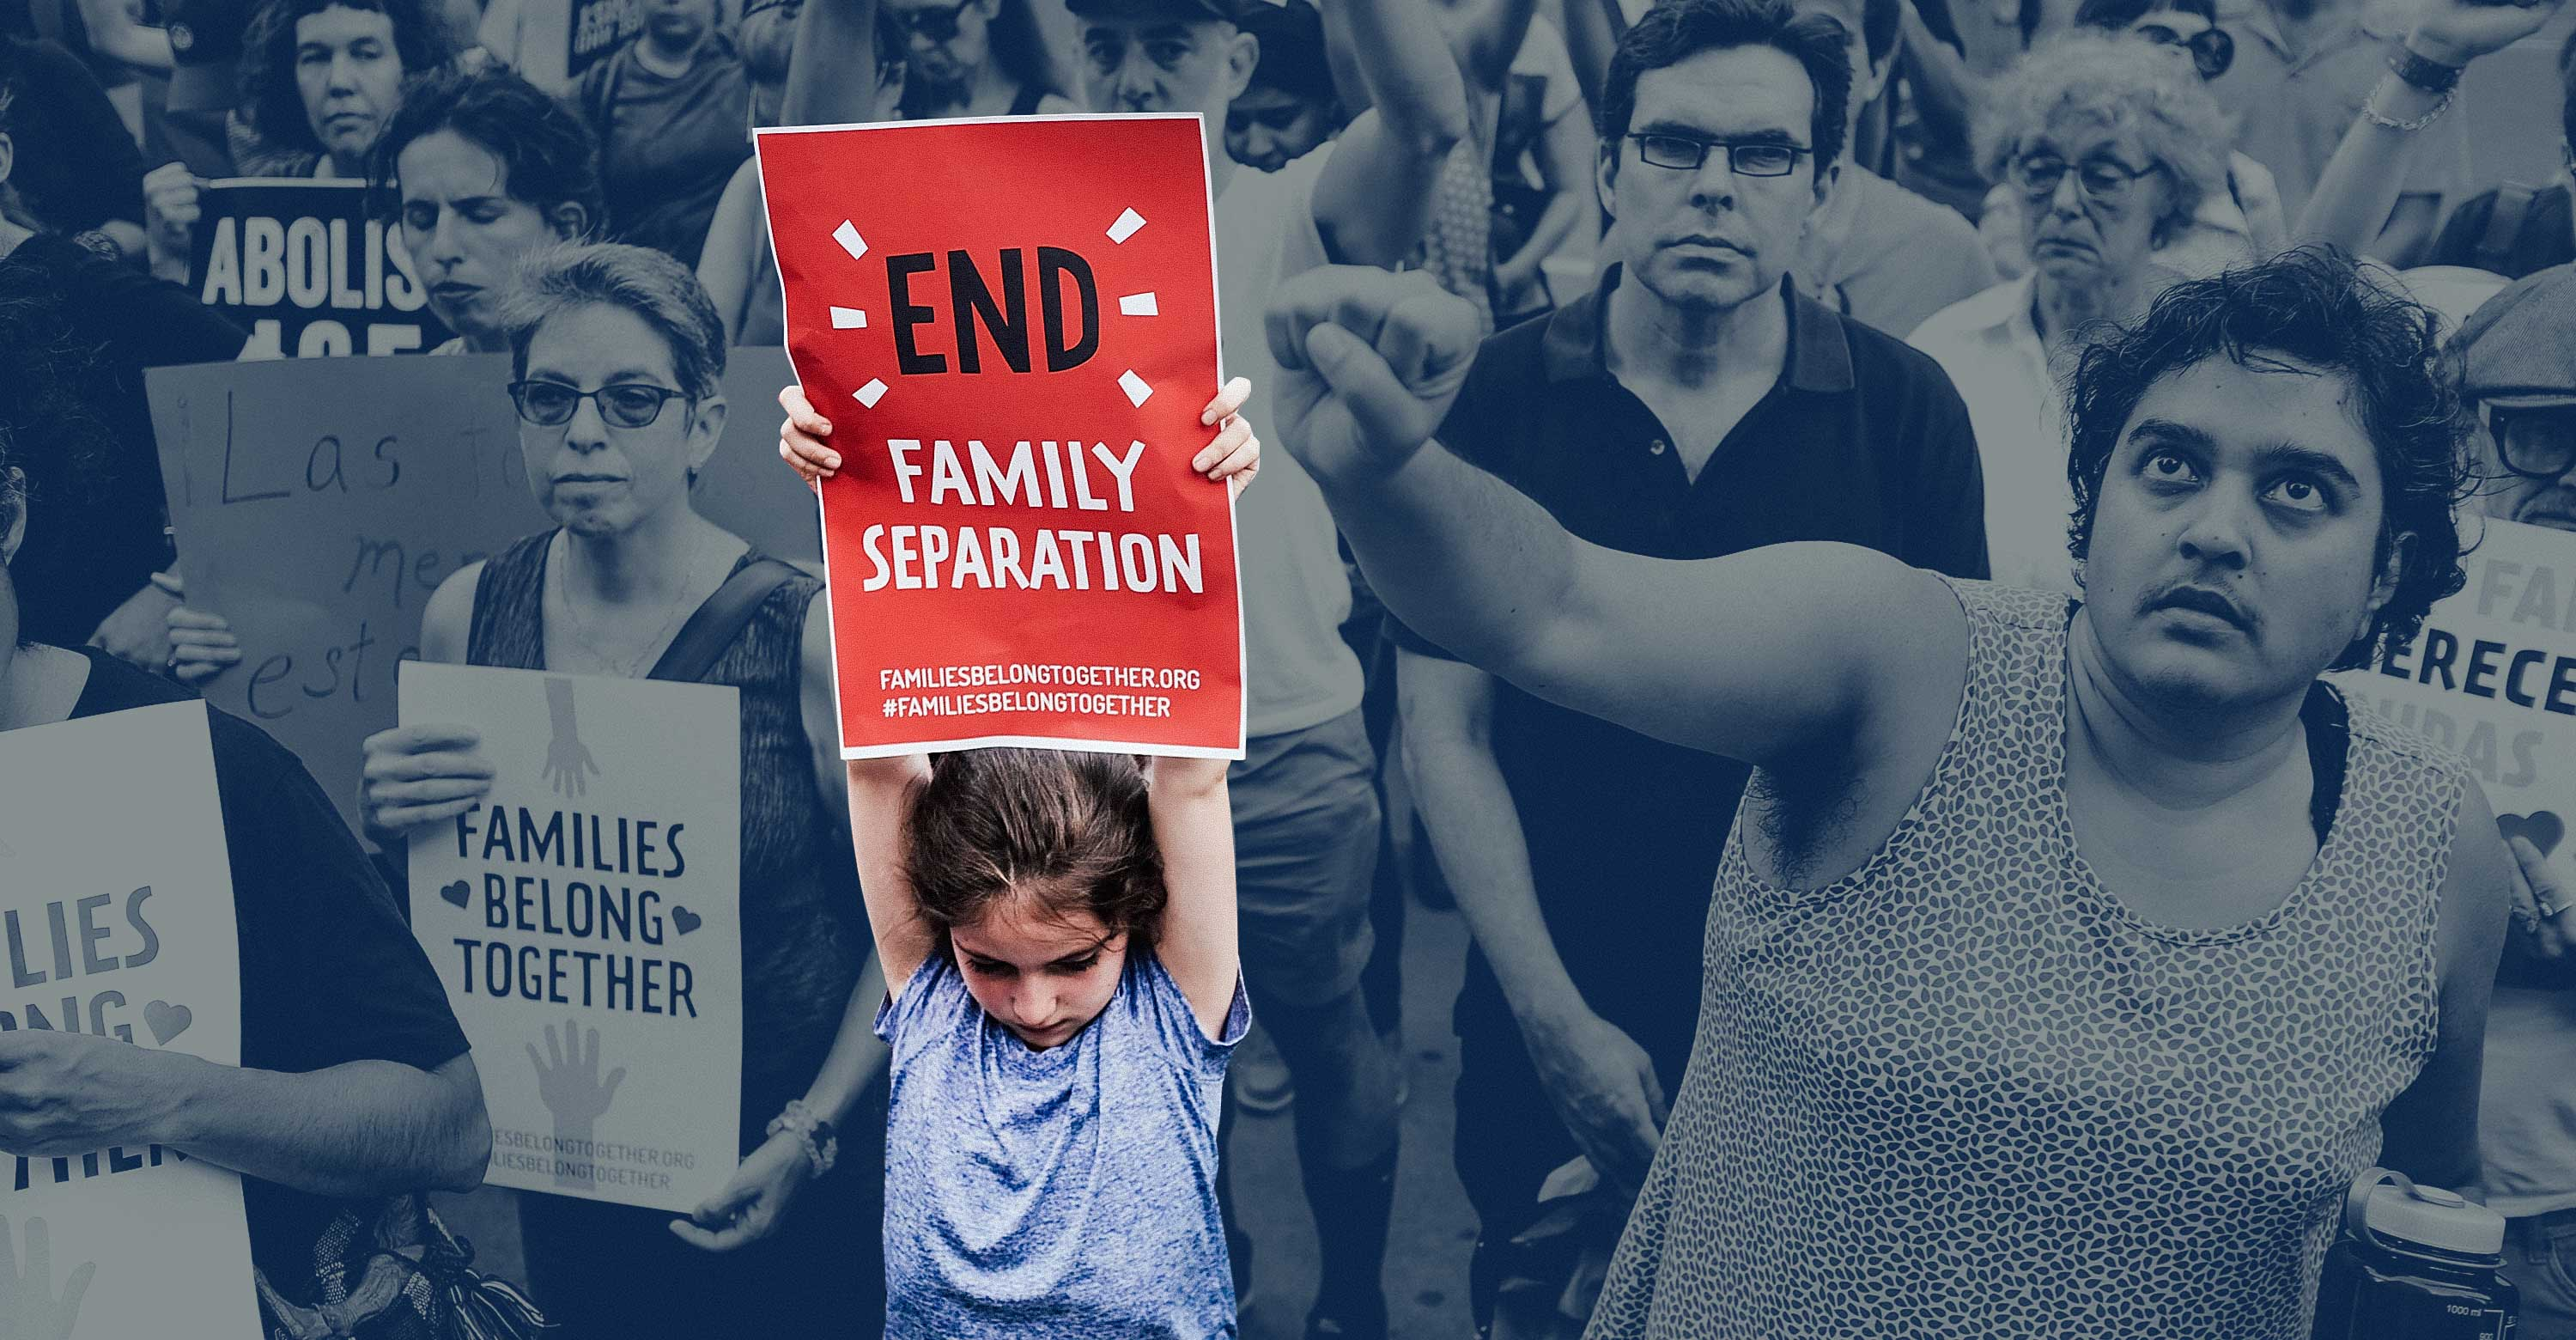 Immigrant rights advocates and others participate in rally and and demonstration at the Federal Building in lower Manhattan against the Trump administration's policy that enables federal agents to take migrant children away from their parents at the border on June 1, 2018 in New York City.